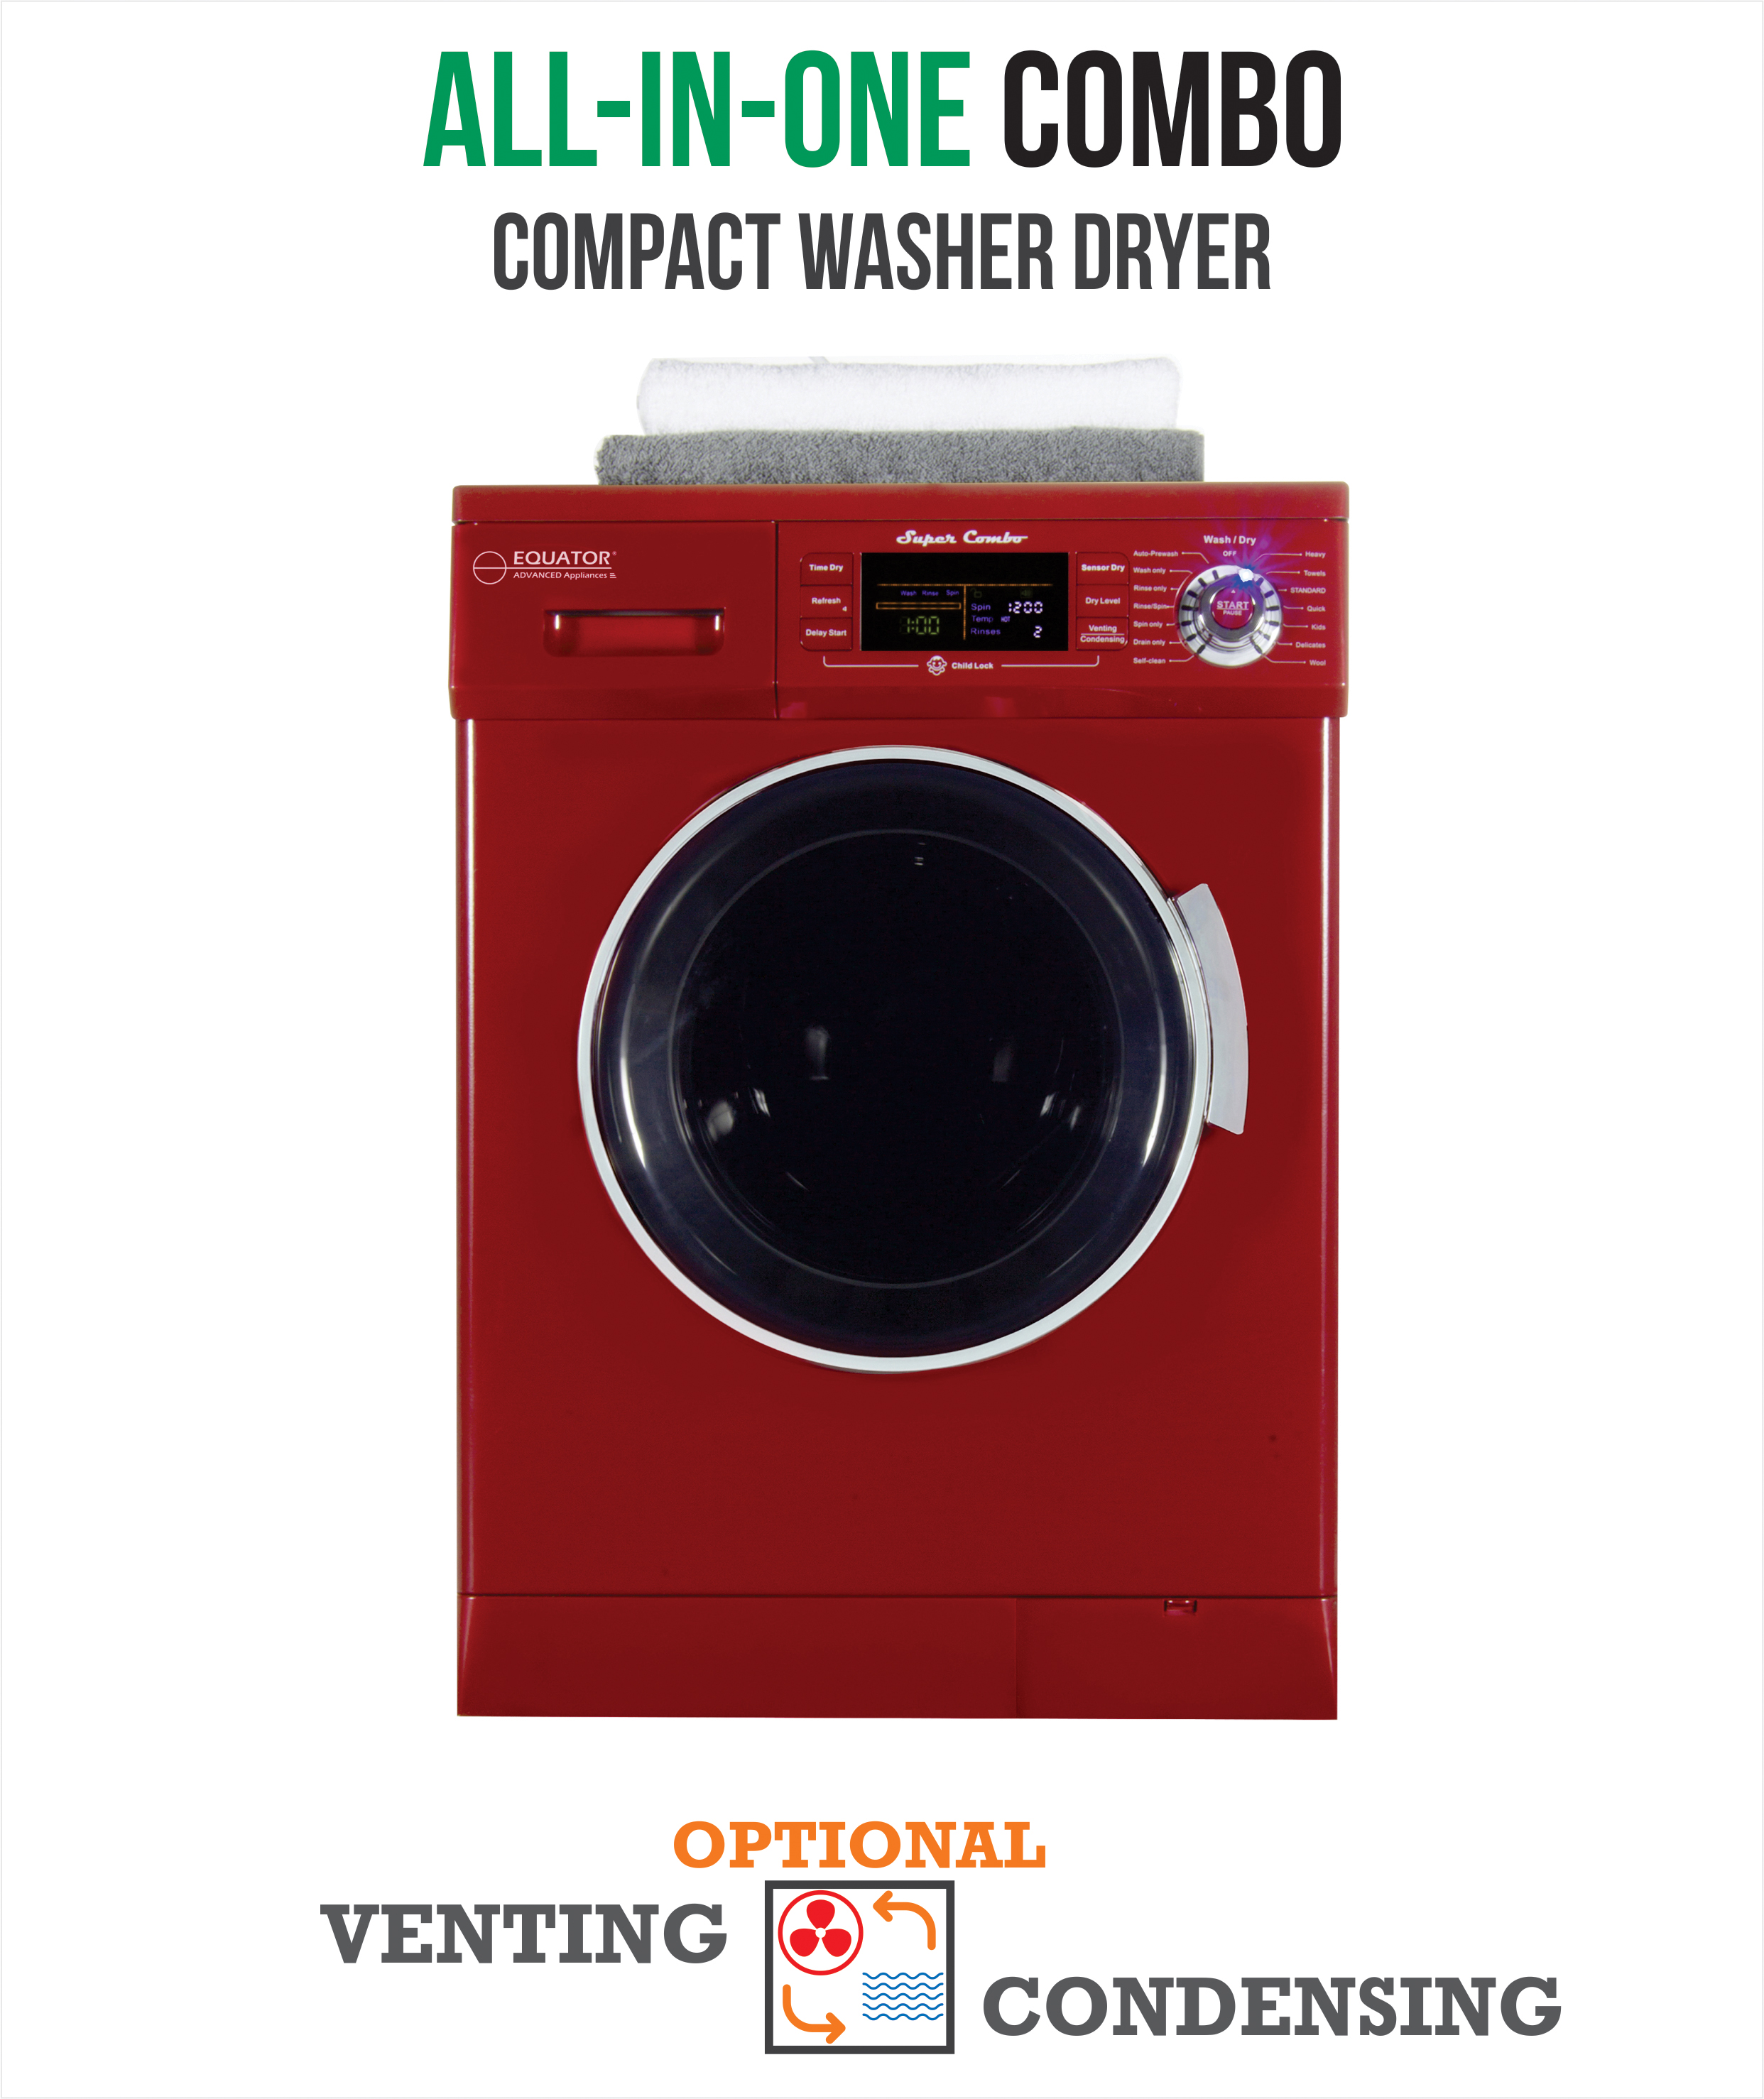 All-in-One 13 lb. 1200 RPM Compact 2016 Combo Washer Dryer with Optional Condensing/ Venting in Merlot.